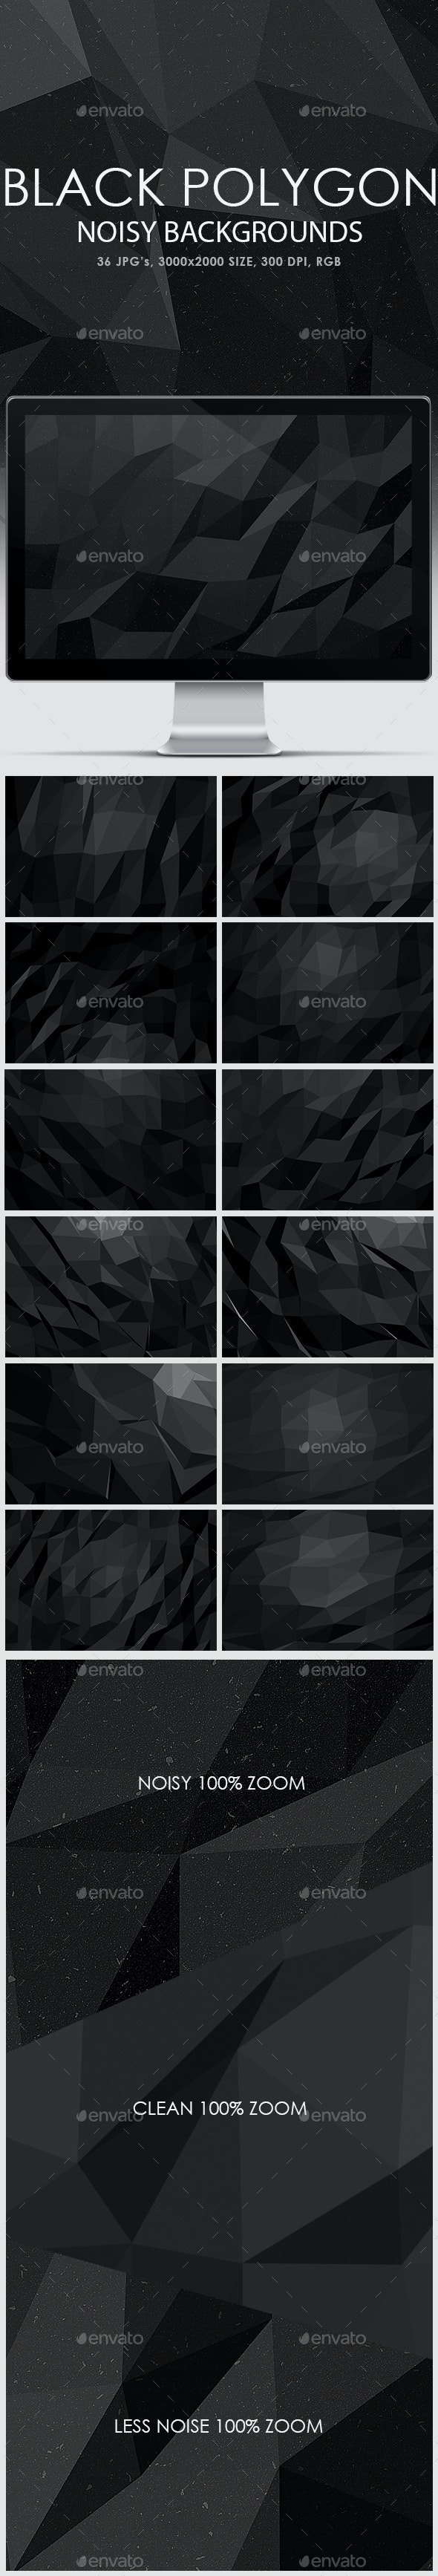 Noisy Black Polygon Backgrounds - Abstract Backgrounds